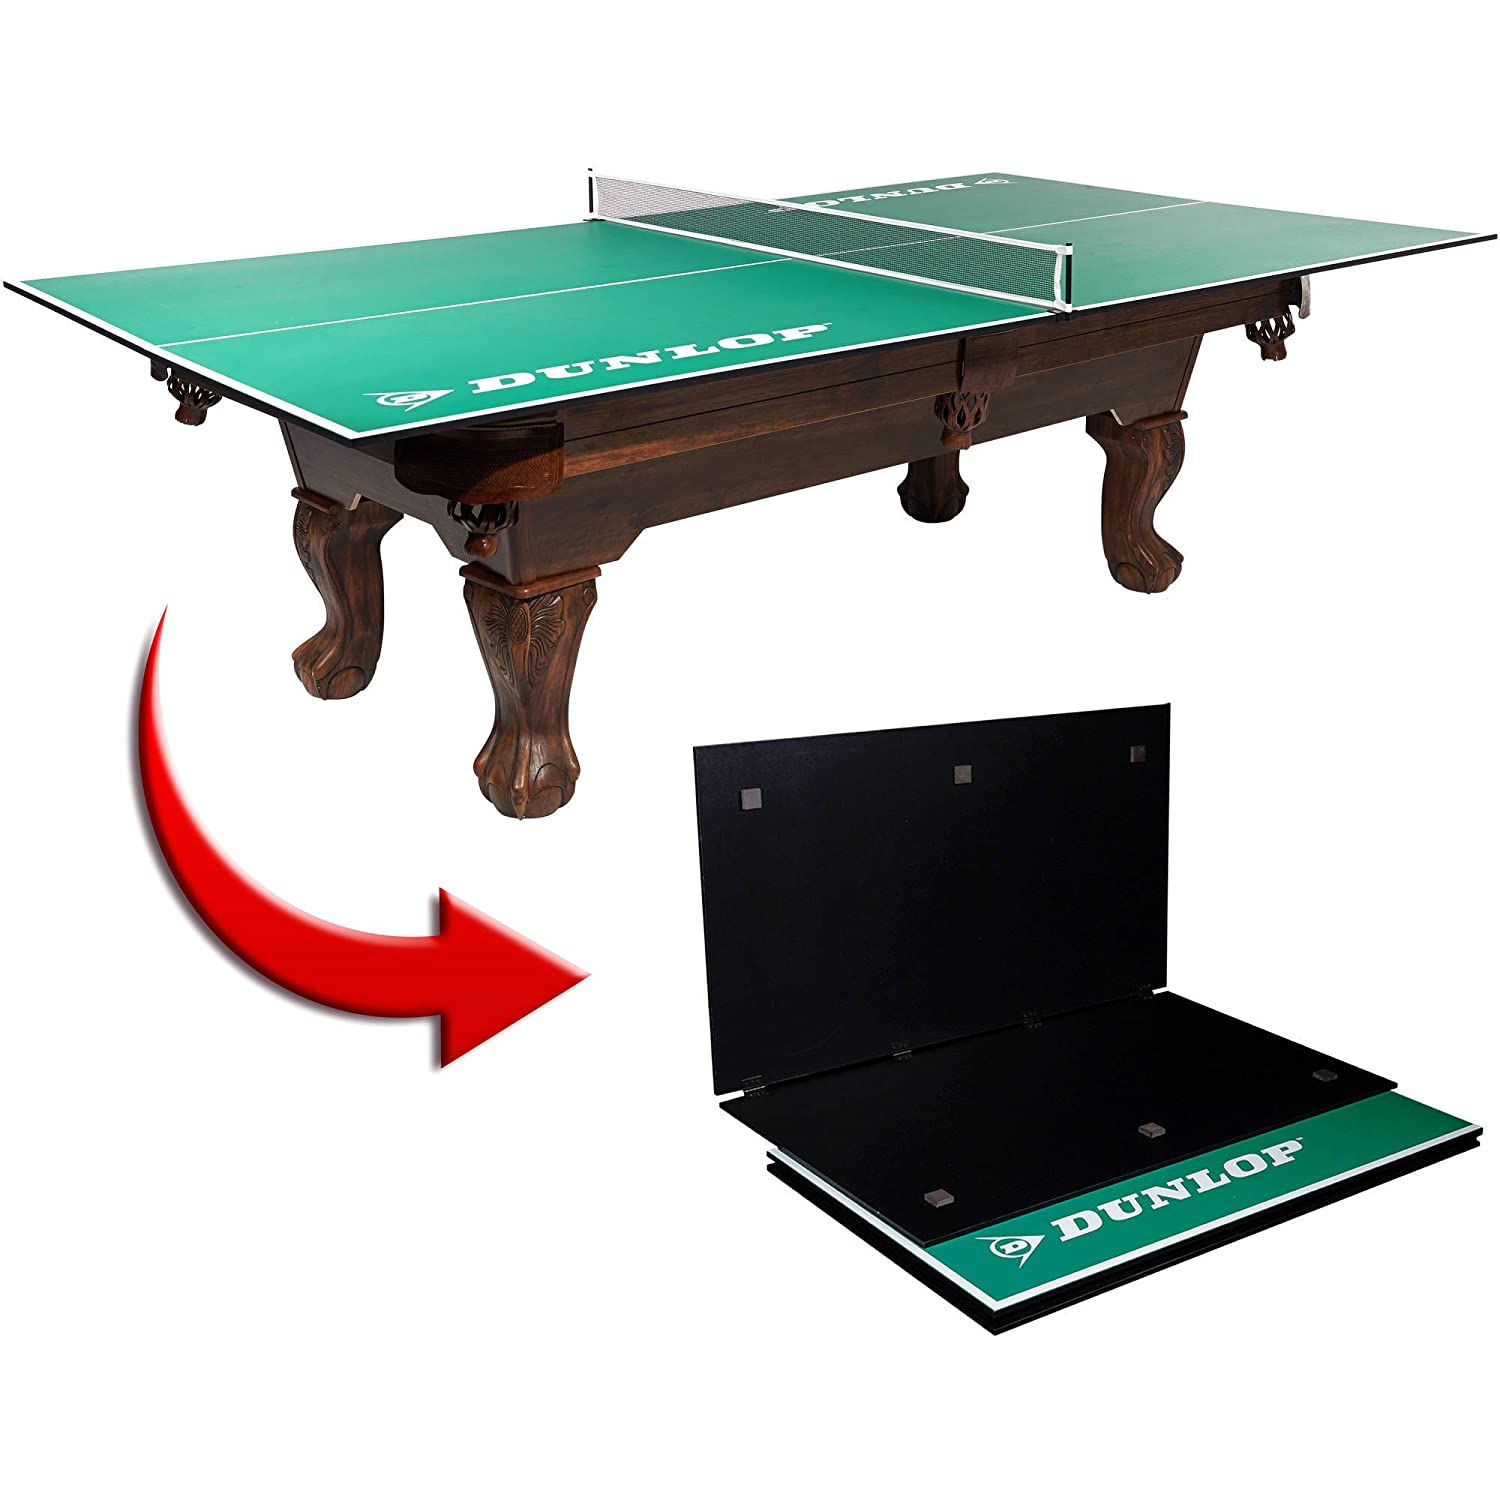 DUNLOP 4 PIECE TABLE TENNIS CONVERSION TOP